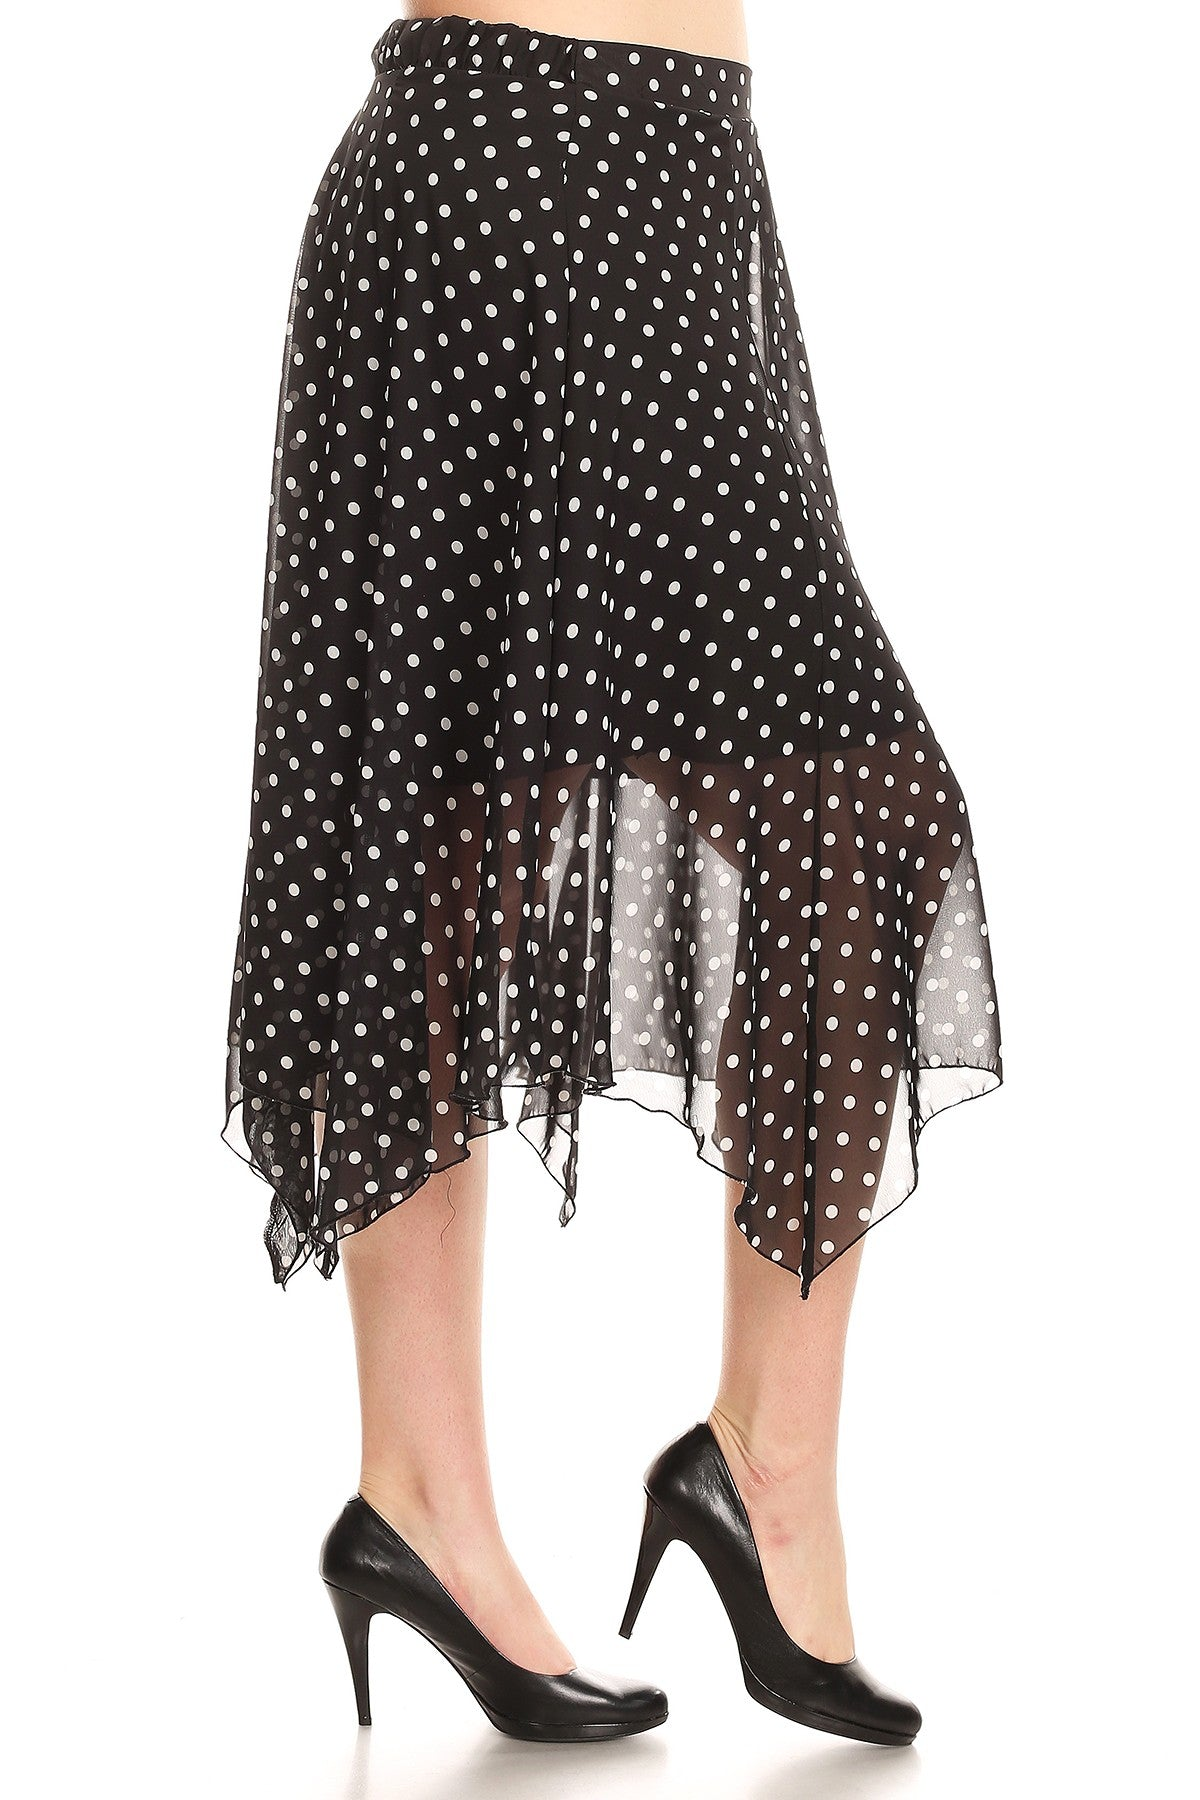 Lilian Polka Dot High Waist Asymmetric Midi Skirt